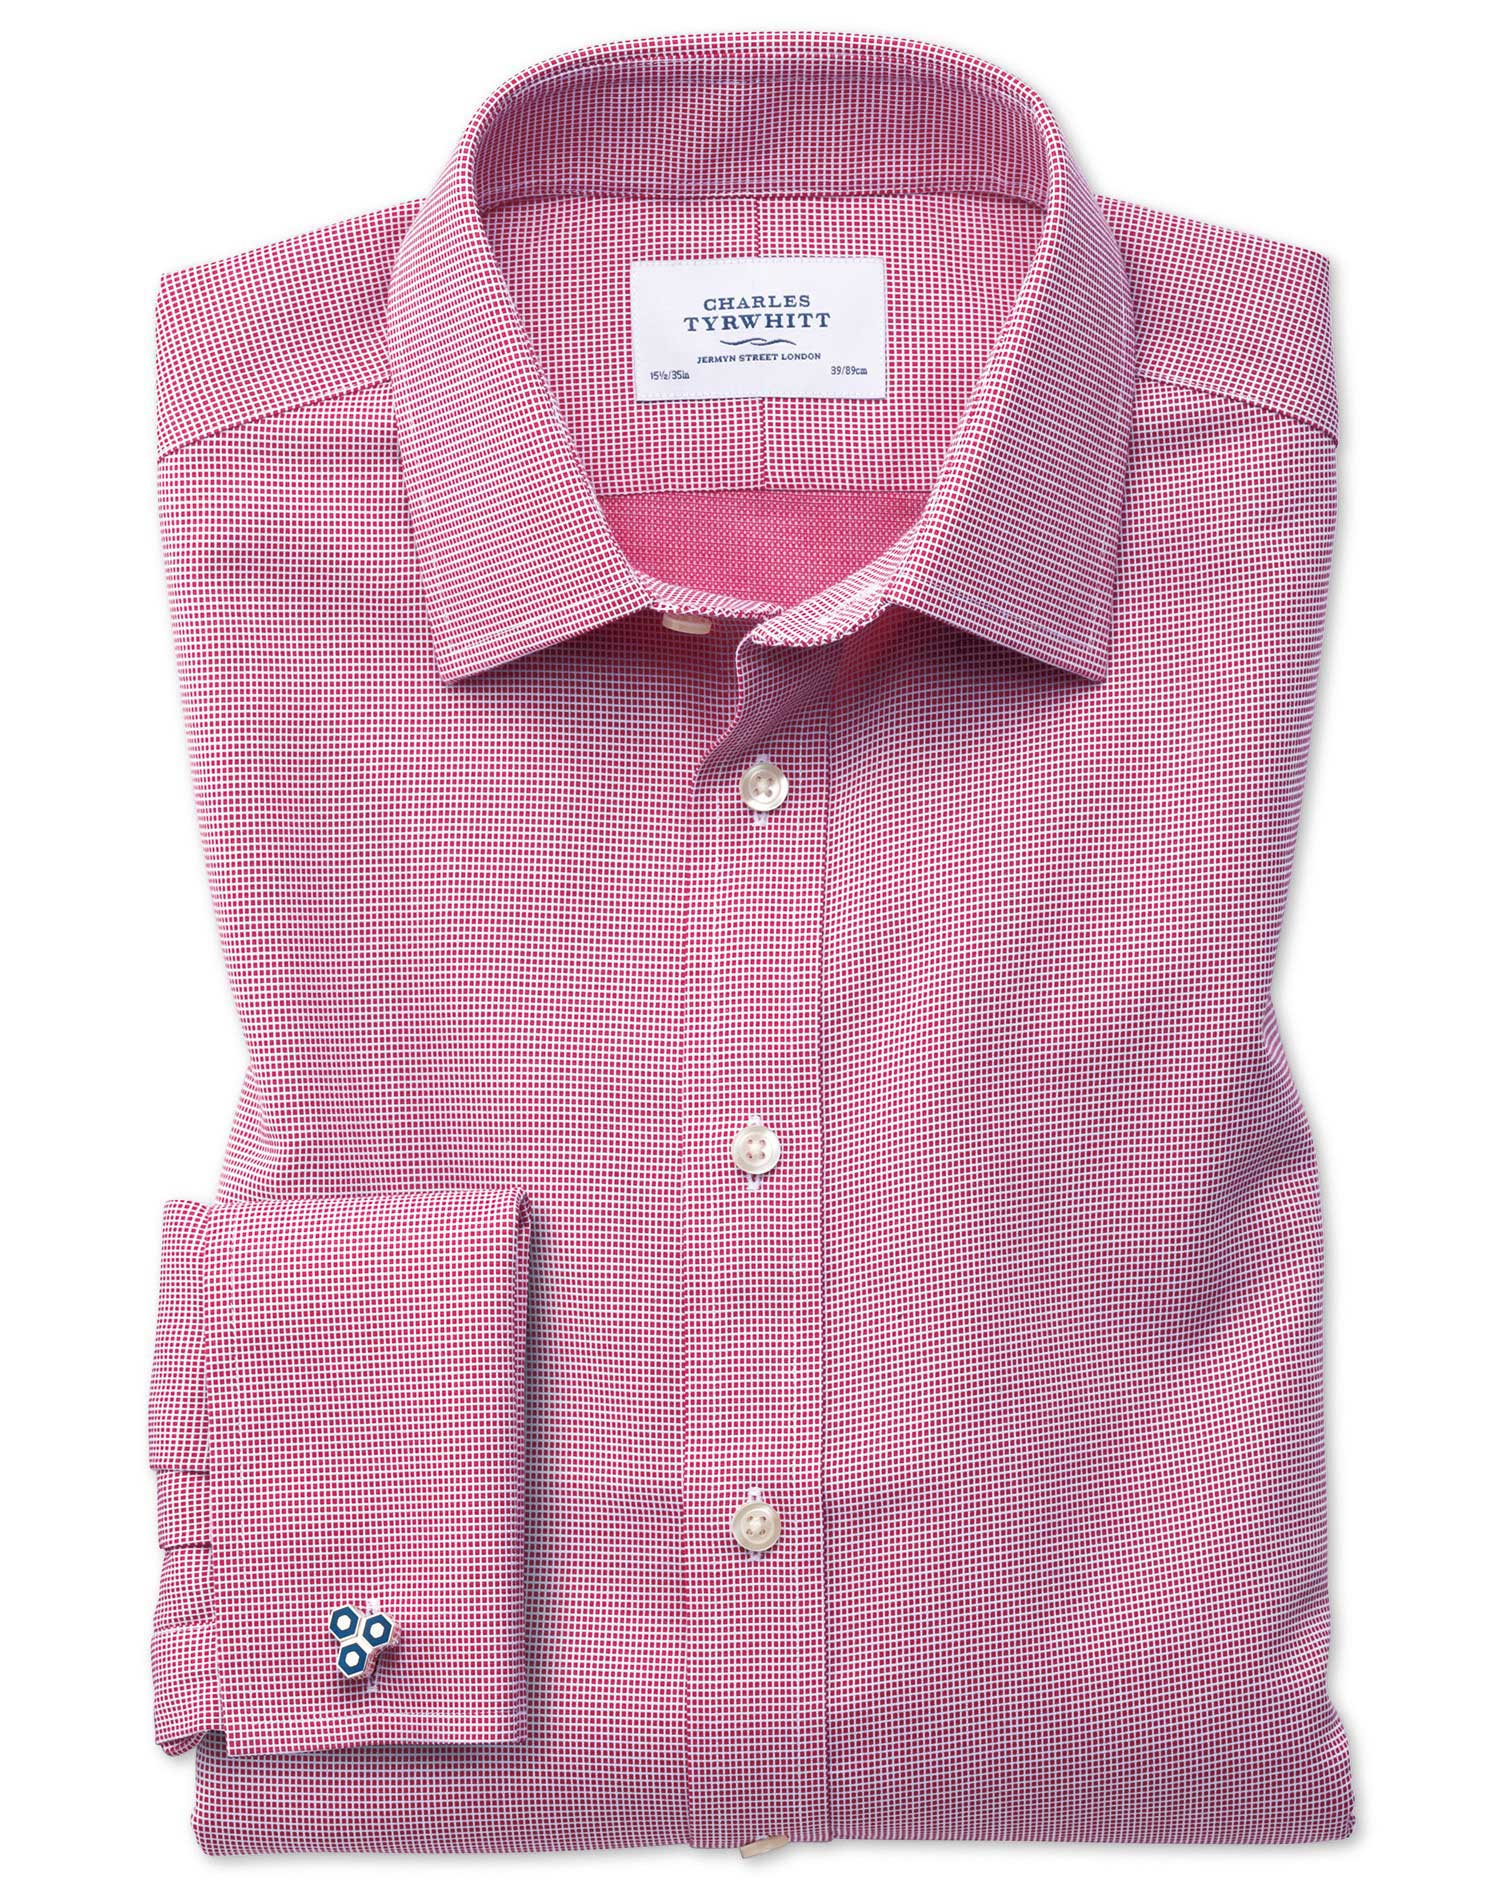 Slim Fit Non-Iron Square Weave Magenta Cotton Formal Shirt Double Cuff Size 16/34 by Charles Tyrwhit